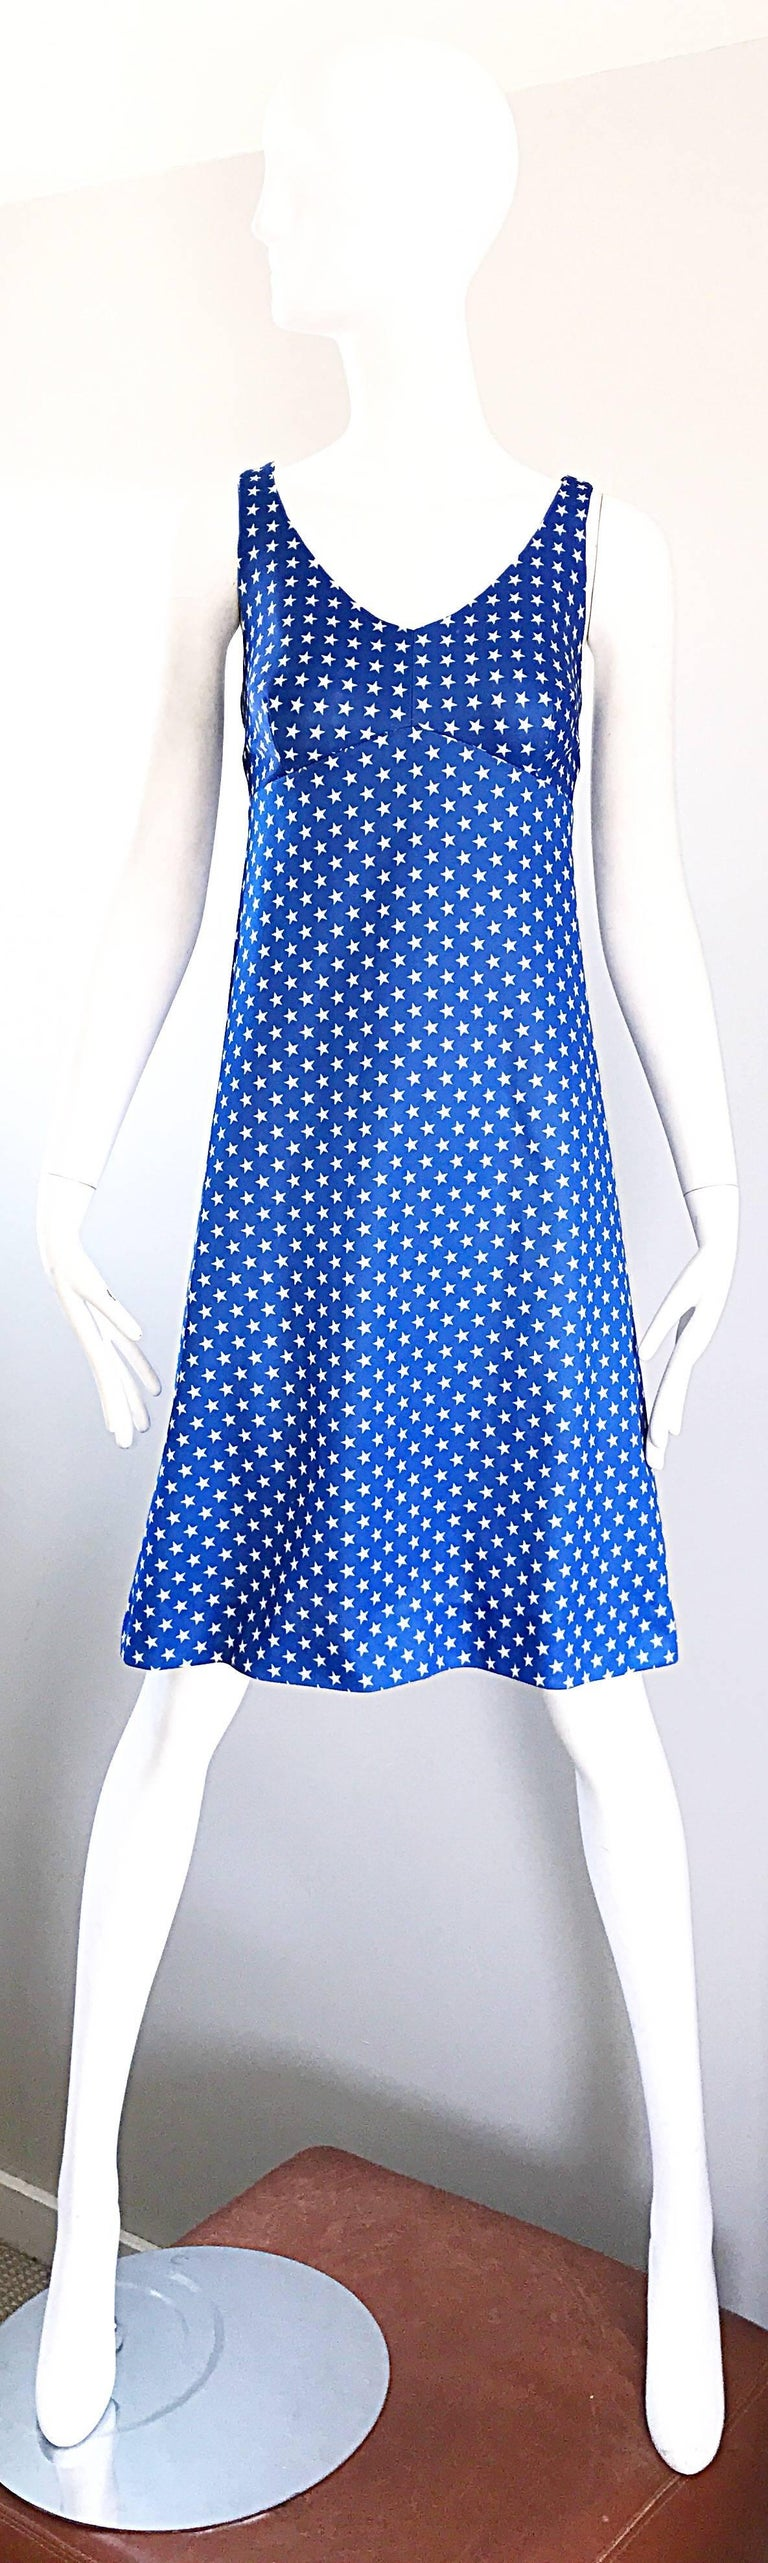 1960s Royal Blue and White Star Print A - Line Novelty Vintage 60s Dress For Sale 5